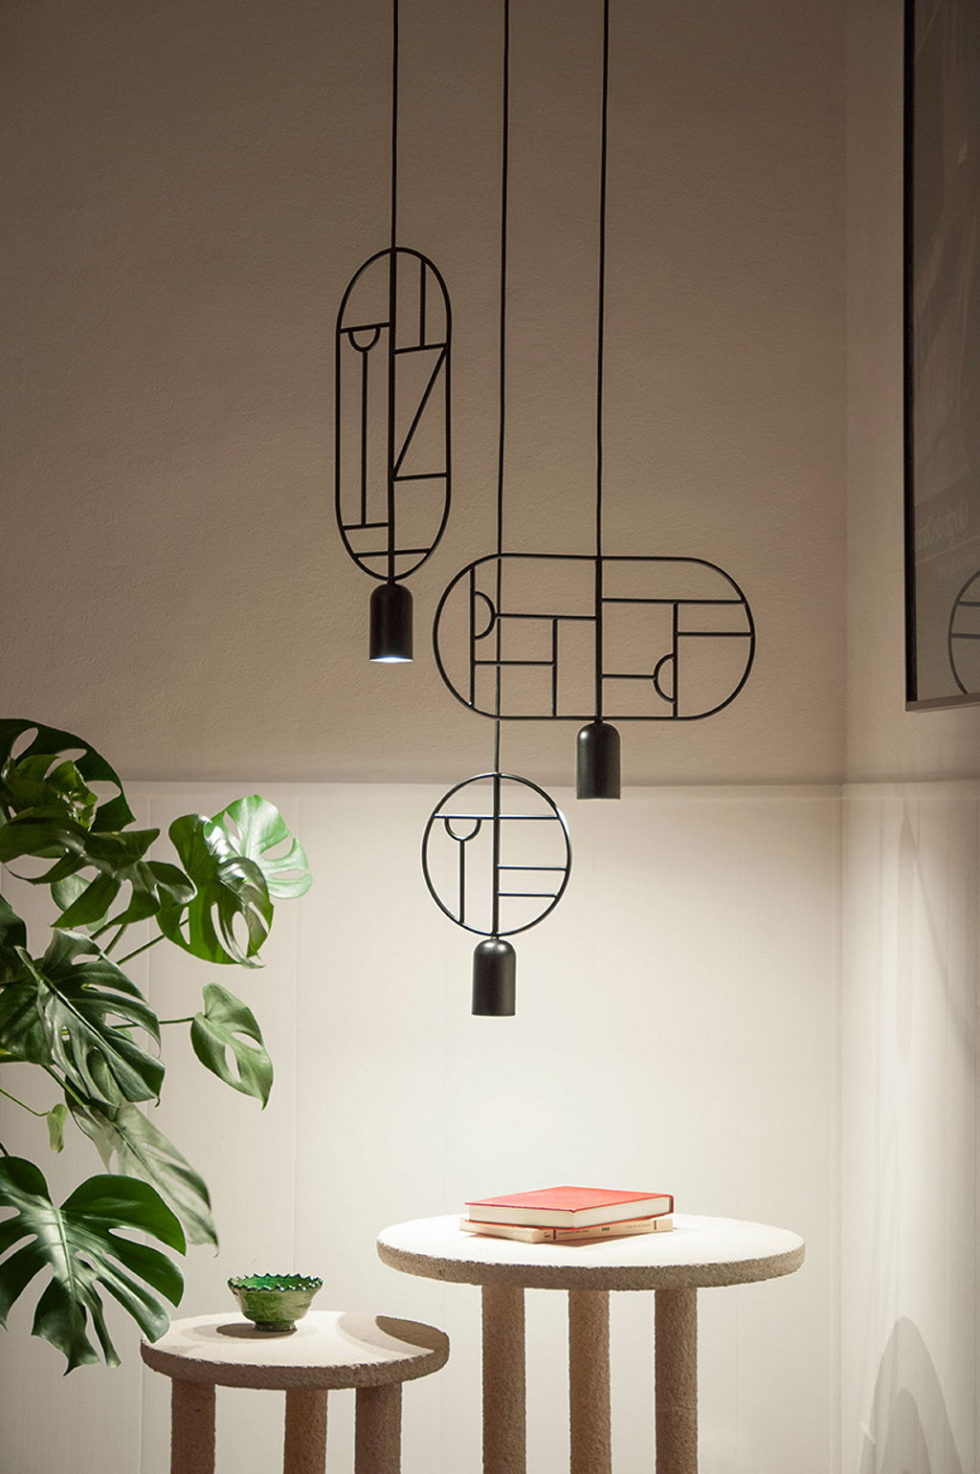 Minimalist pendant lamps Lines & Dots from Goula Figuera studio 8